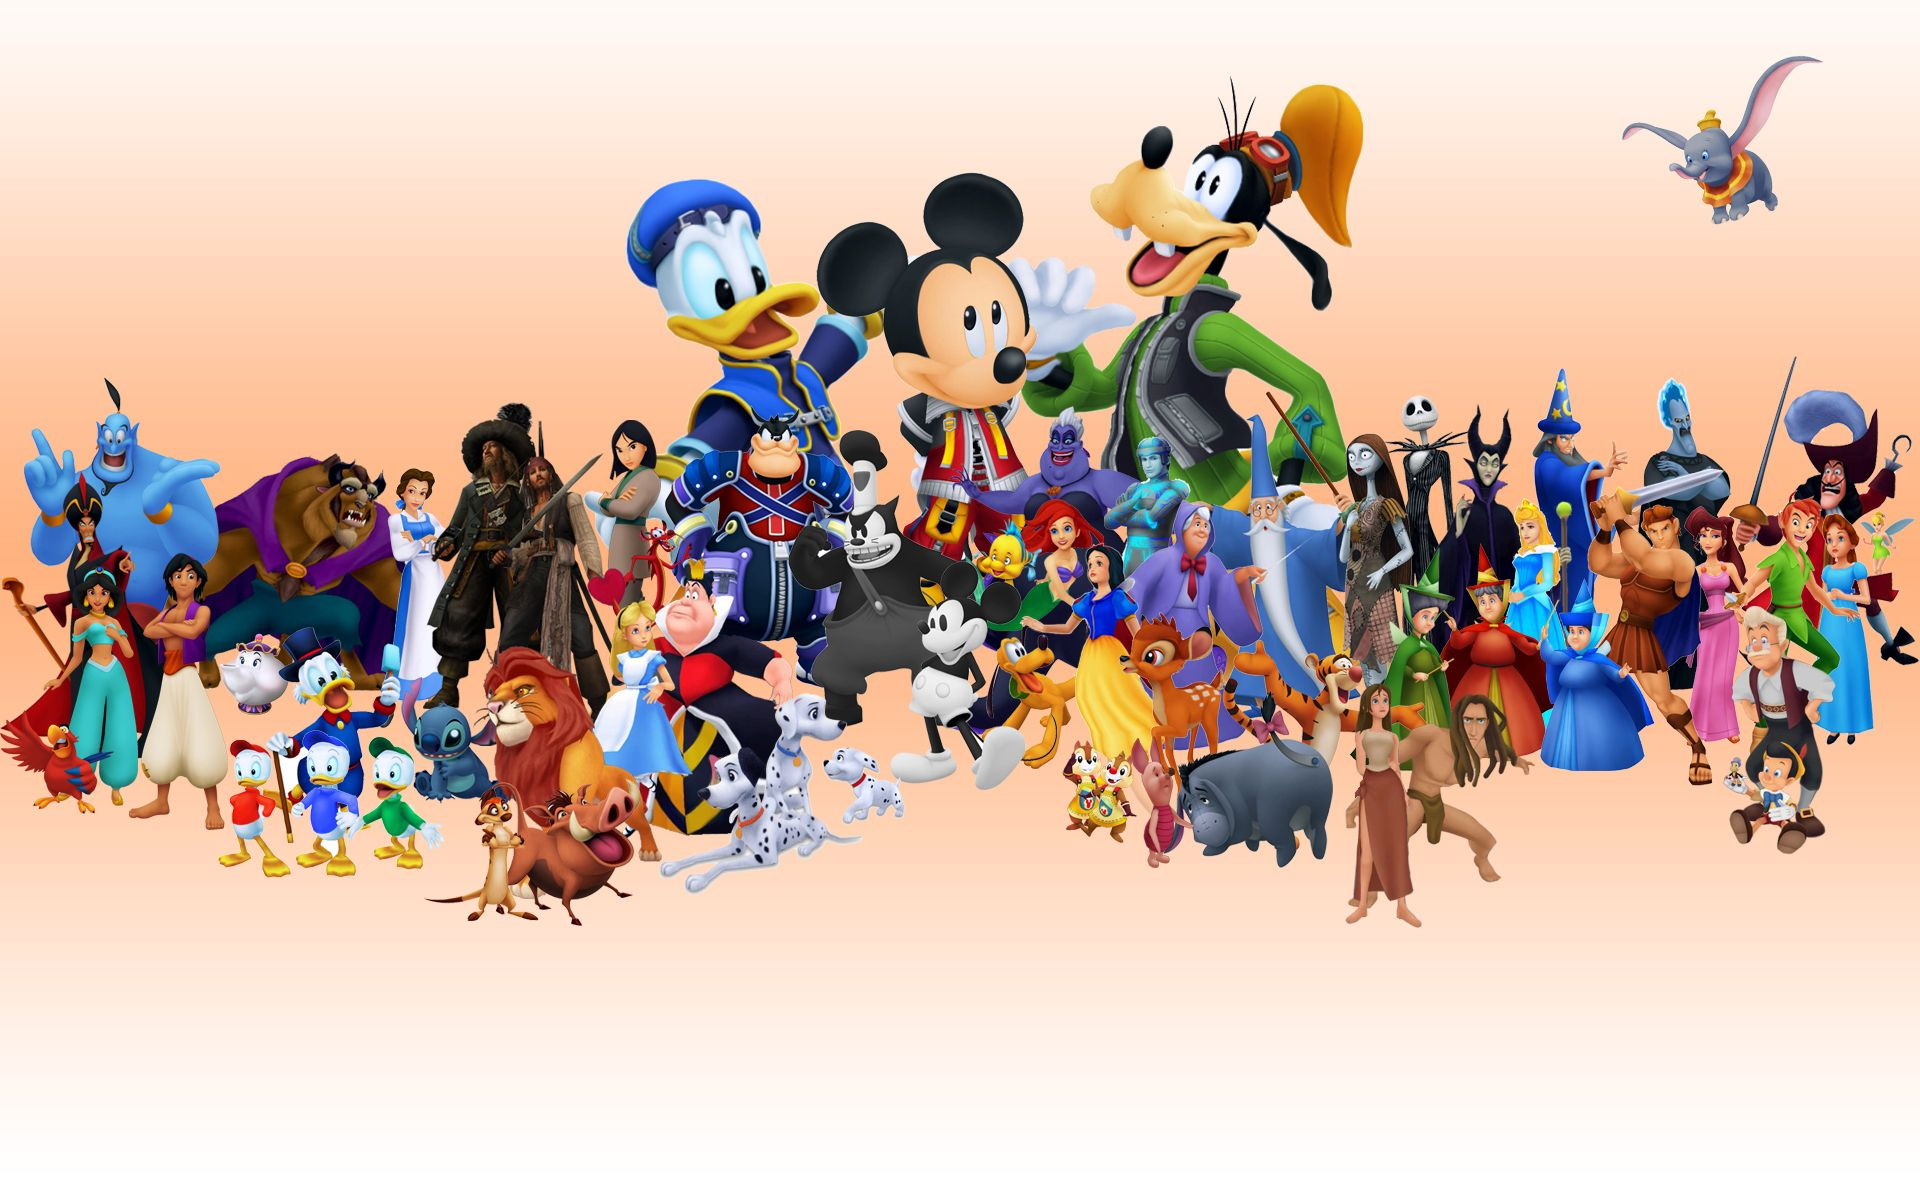 Pin By Lisa On Wallpaper Disney Characters Wallpaper Disney Characters Pictures Walt Disney Characters